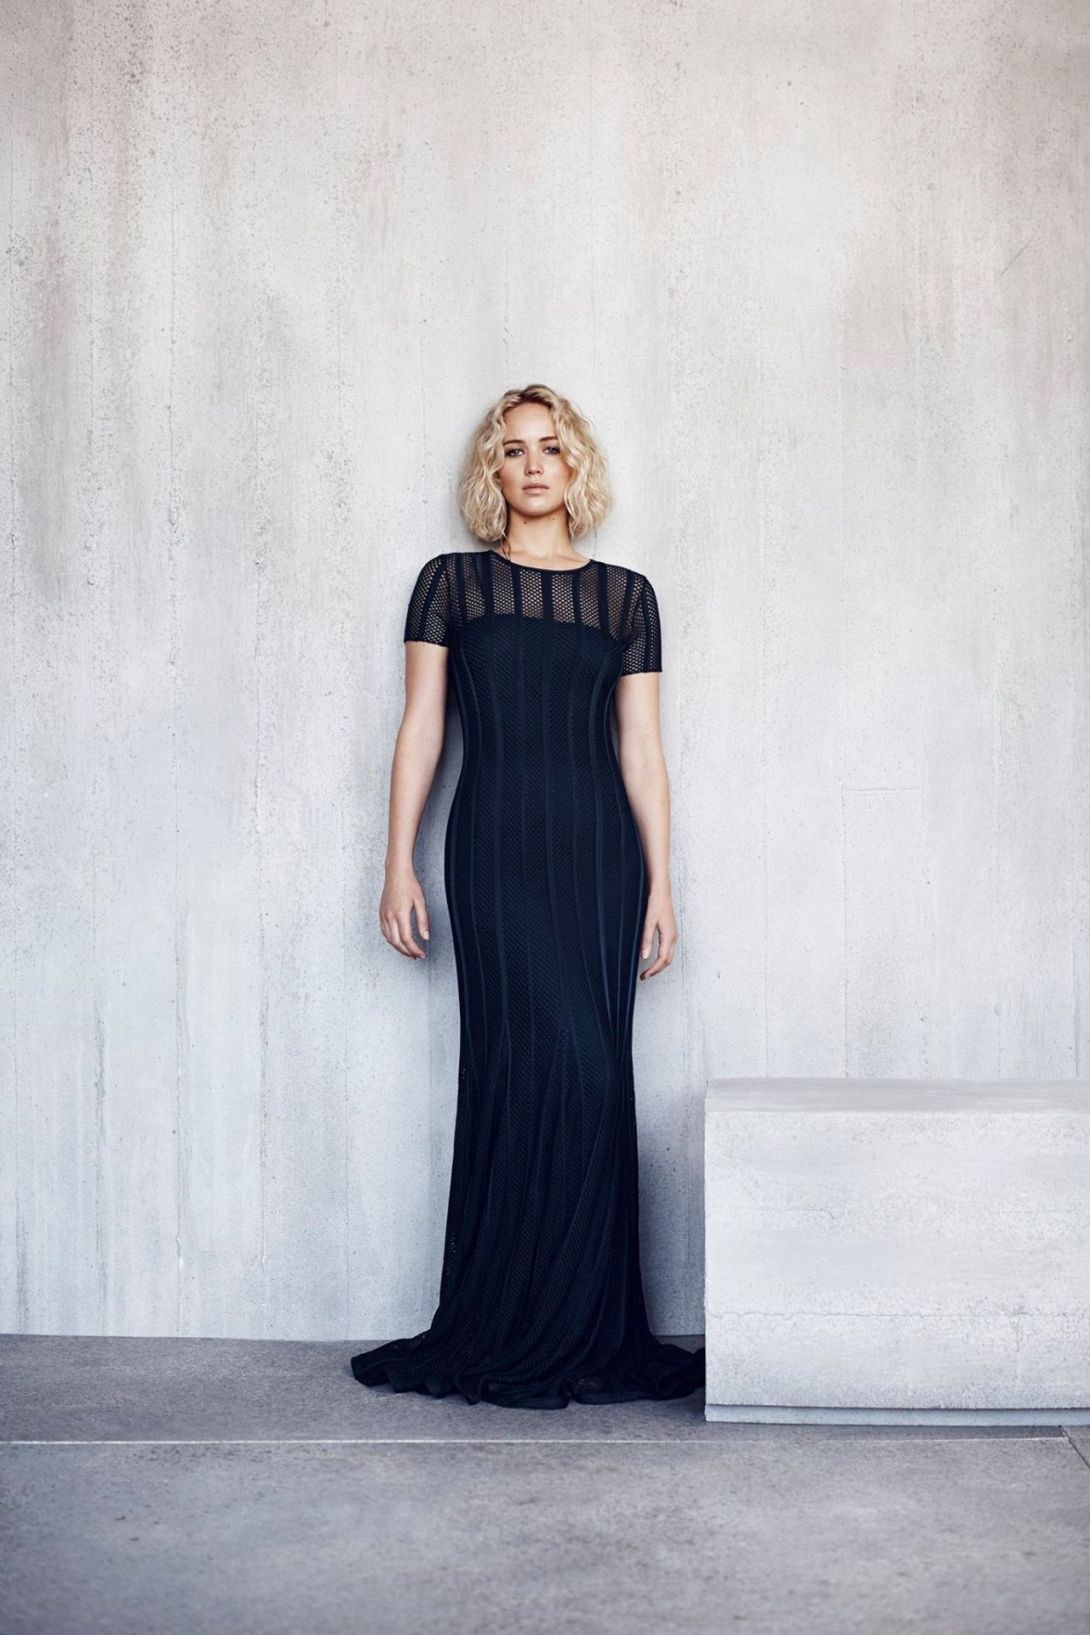 jennifer-lawrence-photo-shoot-for-dior-2016-8.jpg